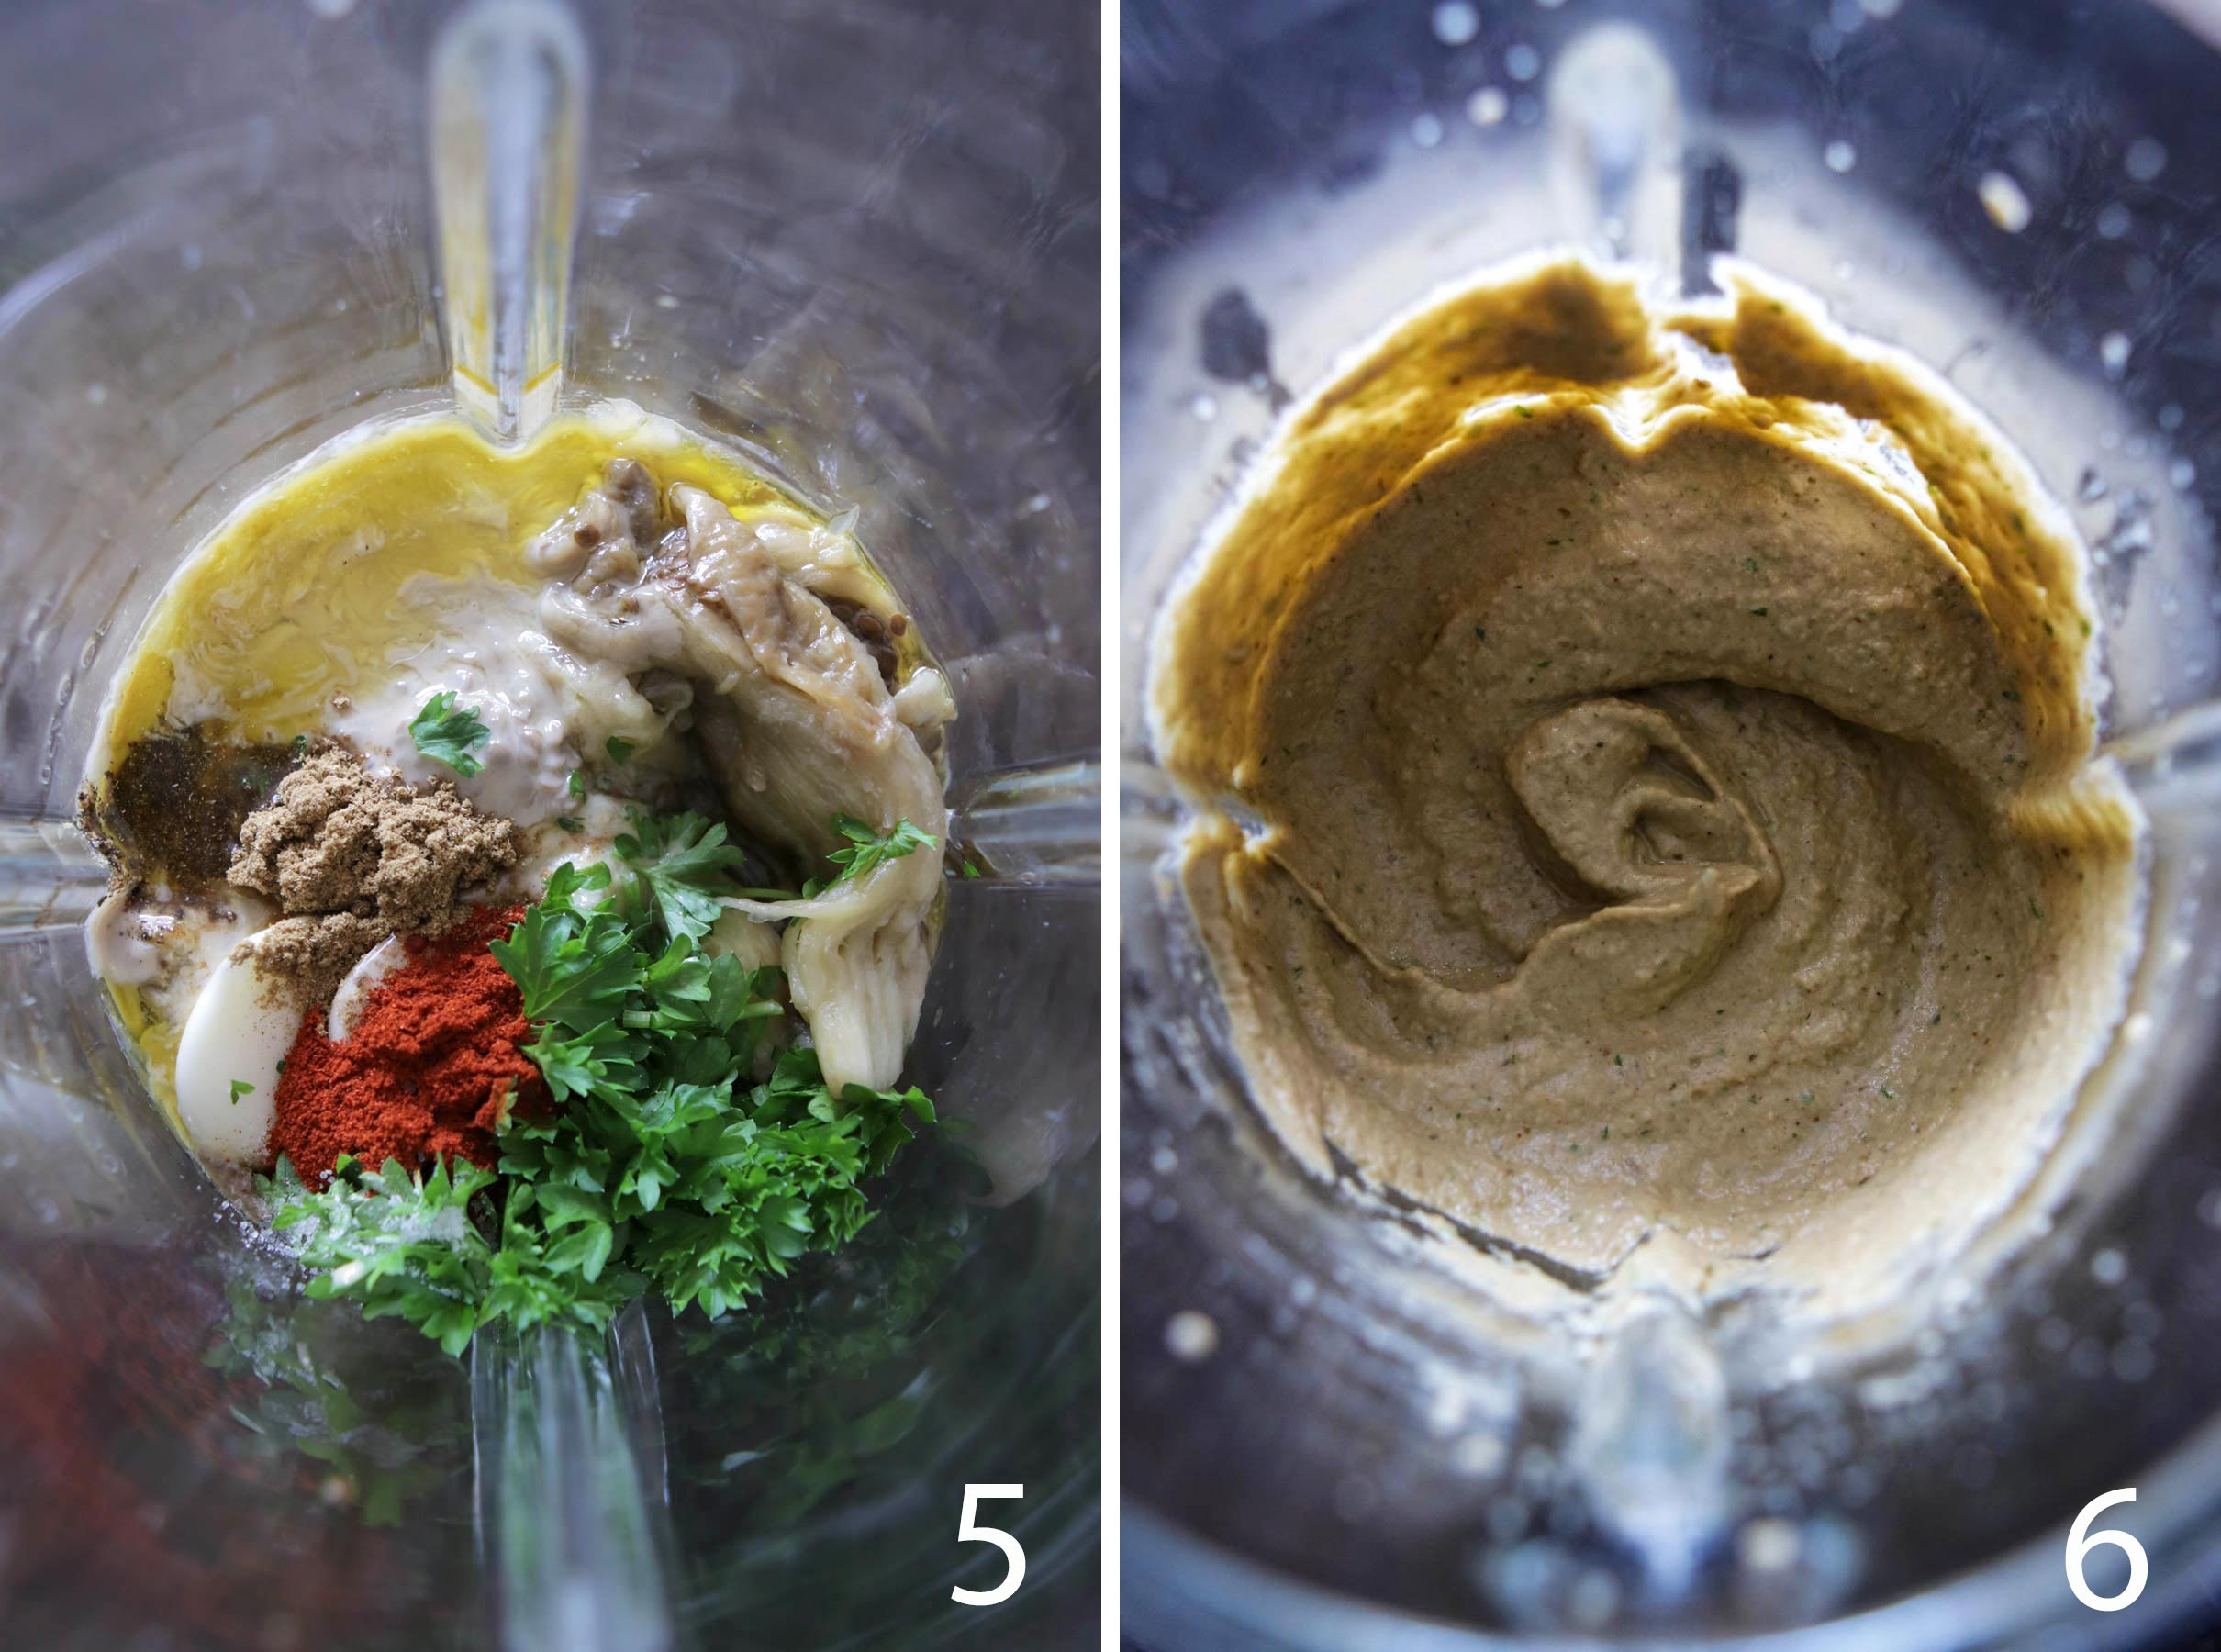 Blending all ingredients to make a delicious Baba Ganoush